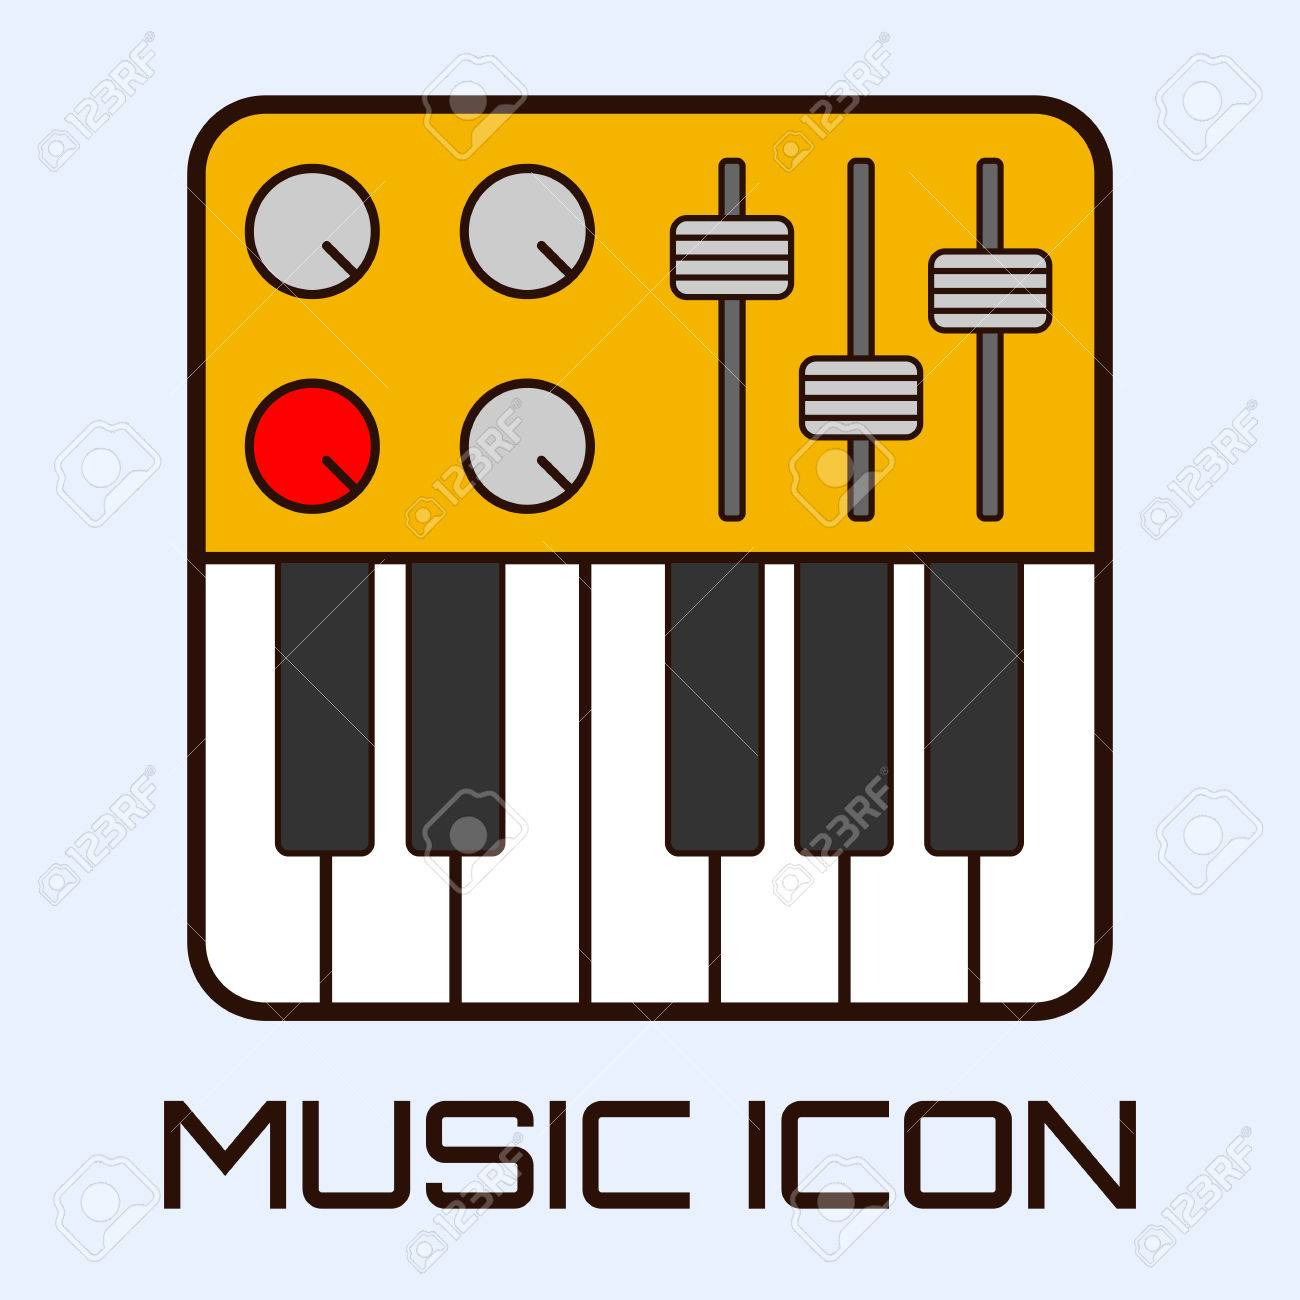 Flat Musical Icon Of Midi Keyboard Or Electric Piano Vector Graphics Stock